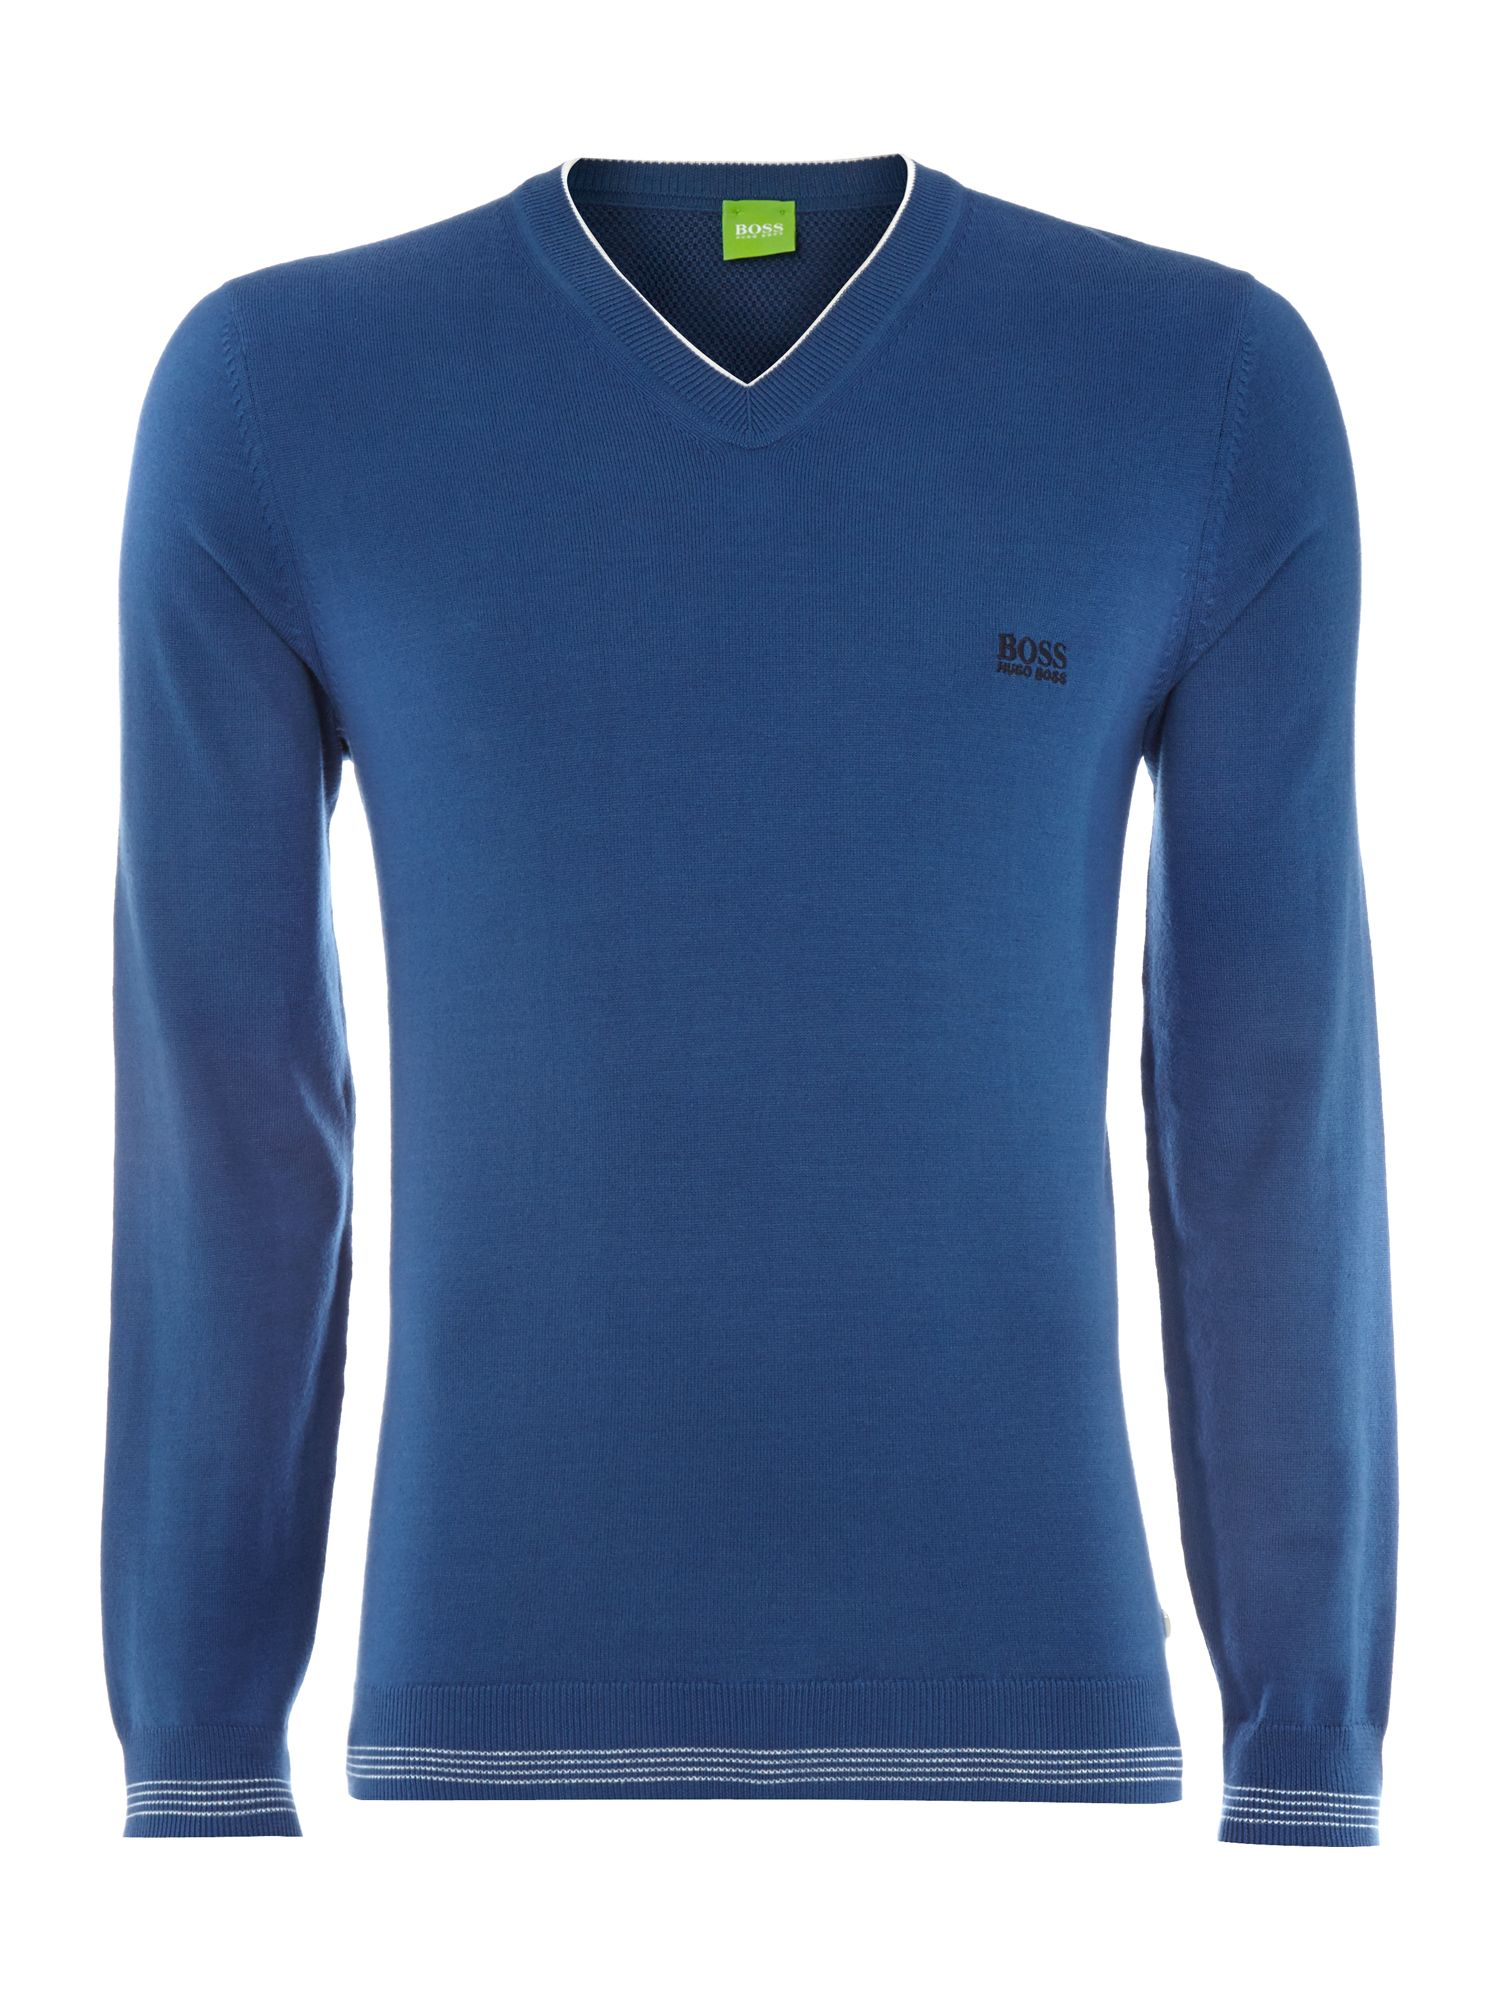 V-neck knitwear jumper